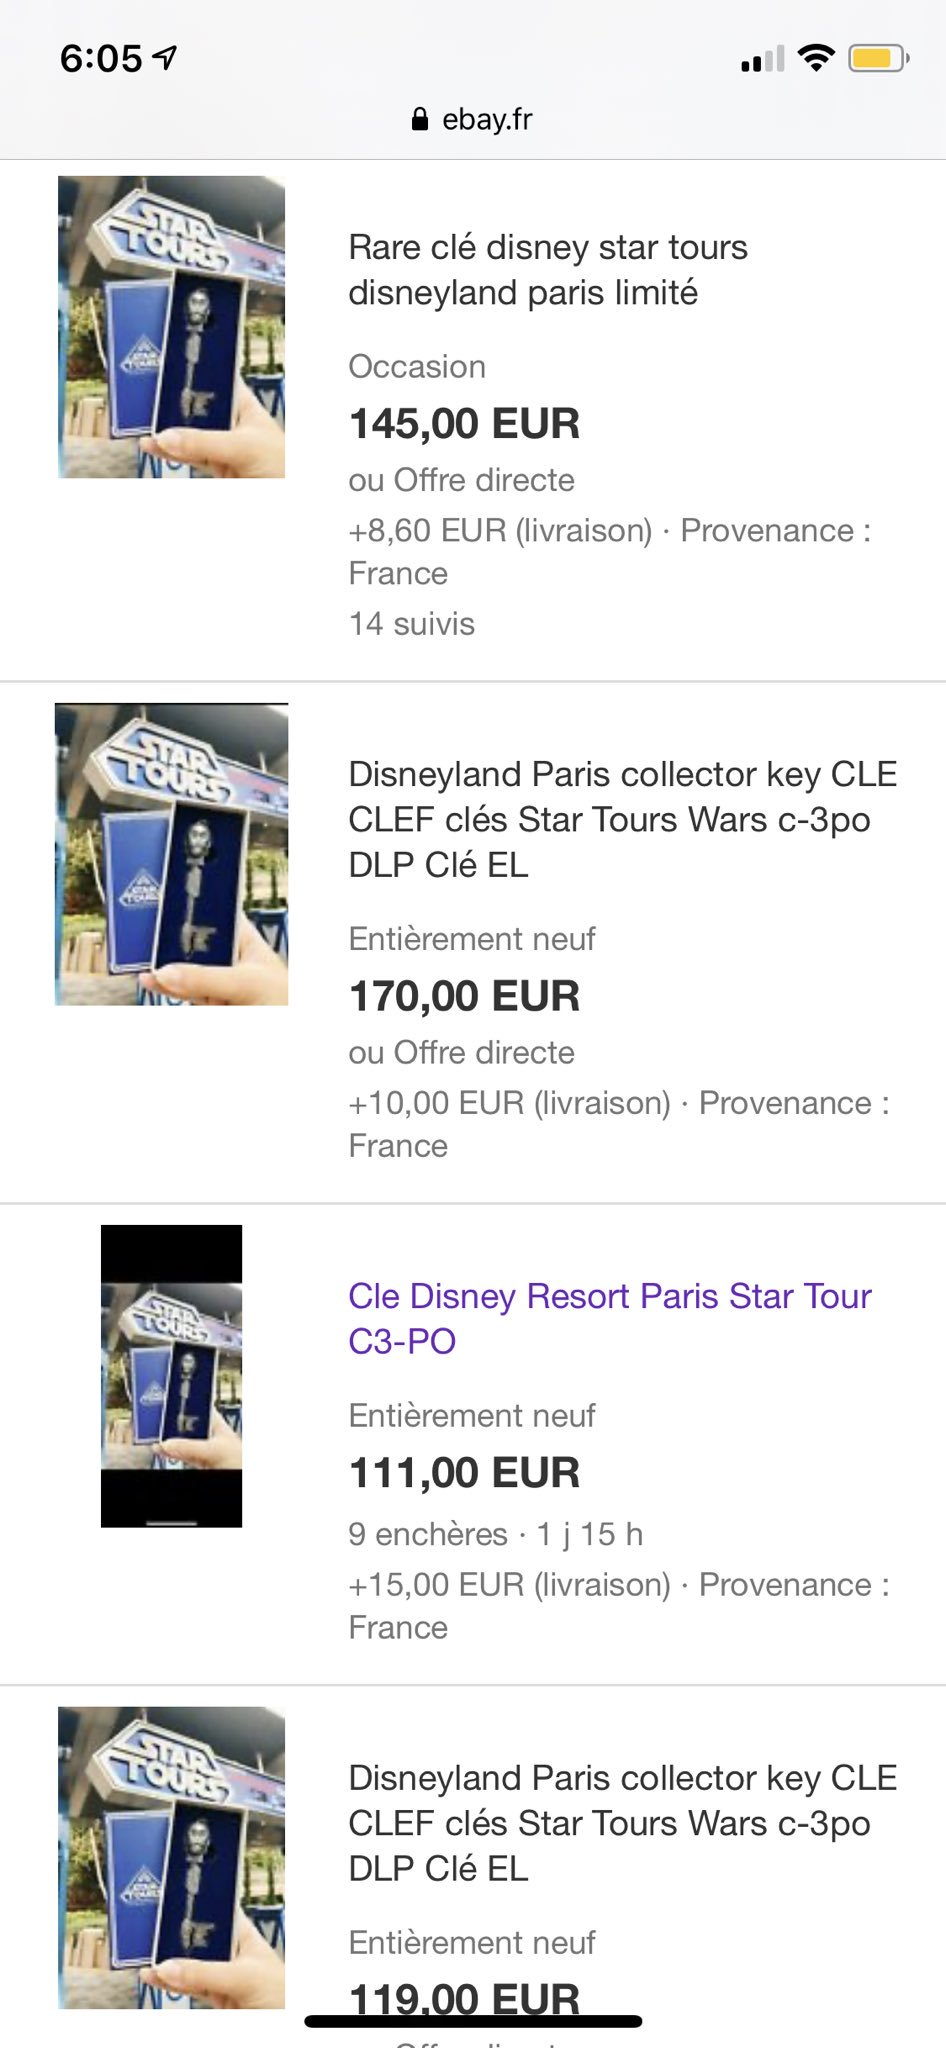 Curious Axel On Twitter And Here We Go Again Wondering How Many Are Real Fans And How Many Are Just Resellers Disneylandparis Stop Feeding These Guys Mouse Moni Https T Co Mgvtgaq9kt